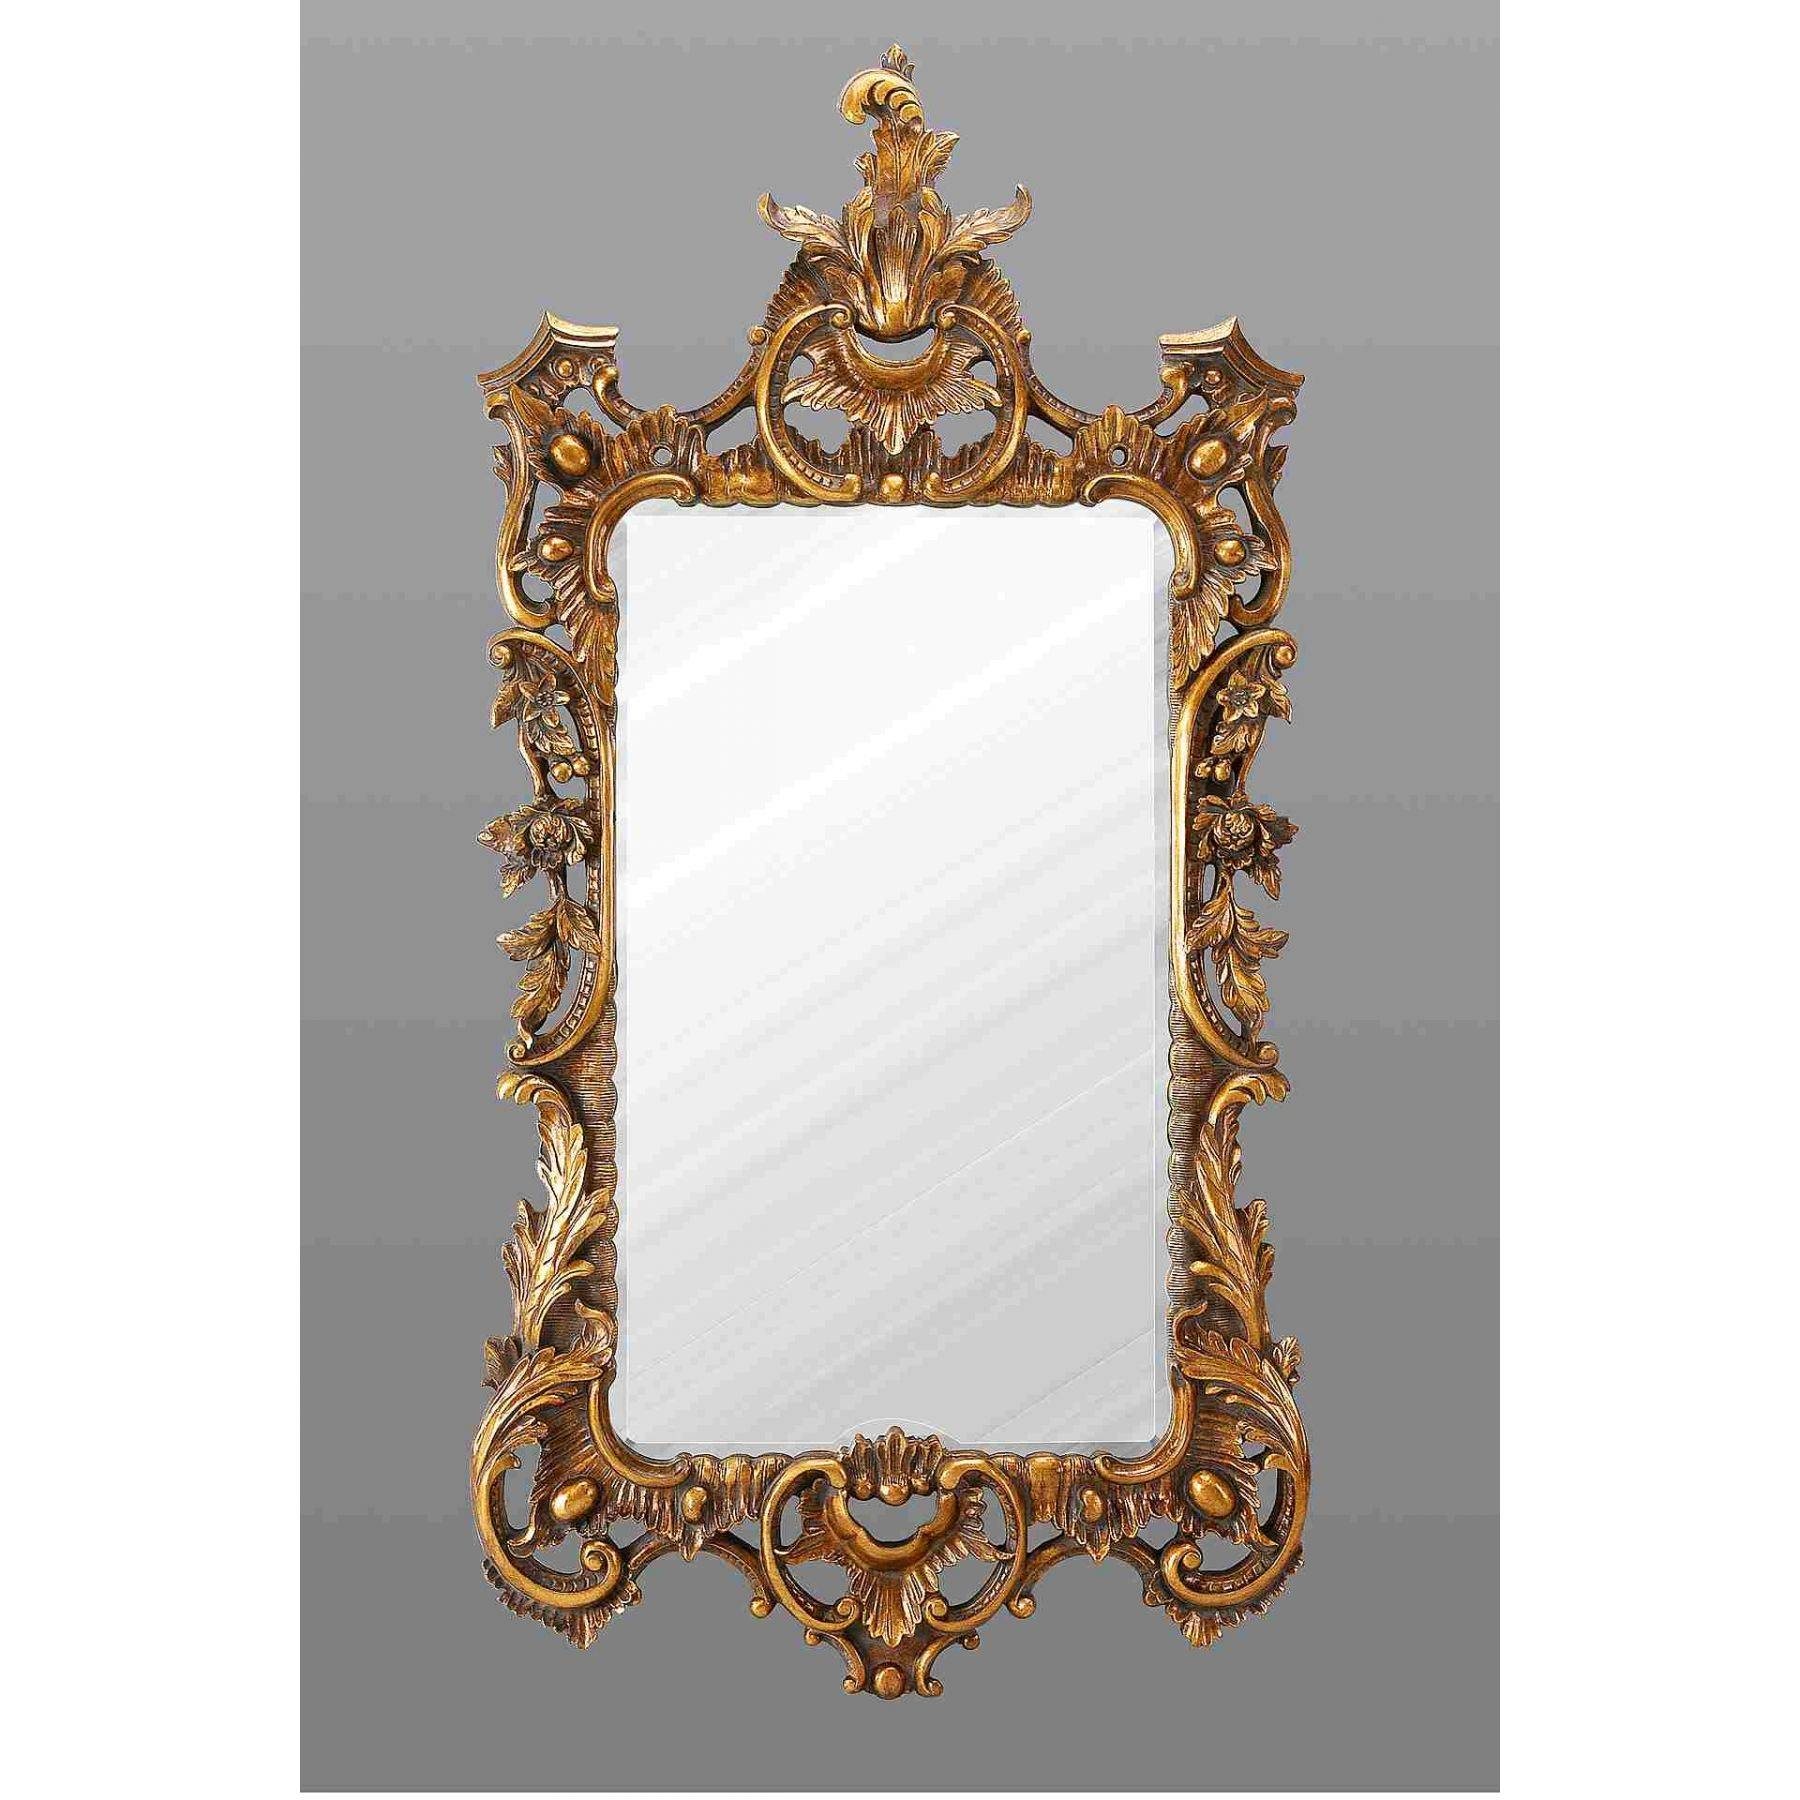 Antique Mirrors Glass : Clean Black Spots On Antique Mirrors throughout Gold Antique Mirrors (Image 7 of 25)